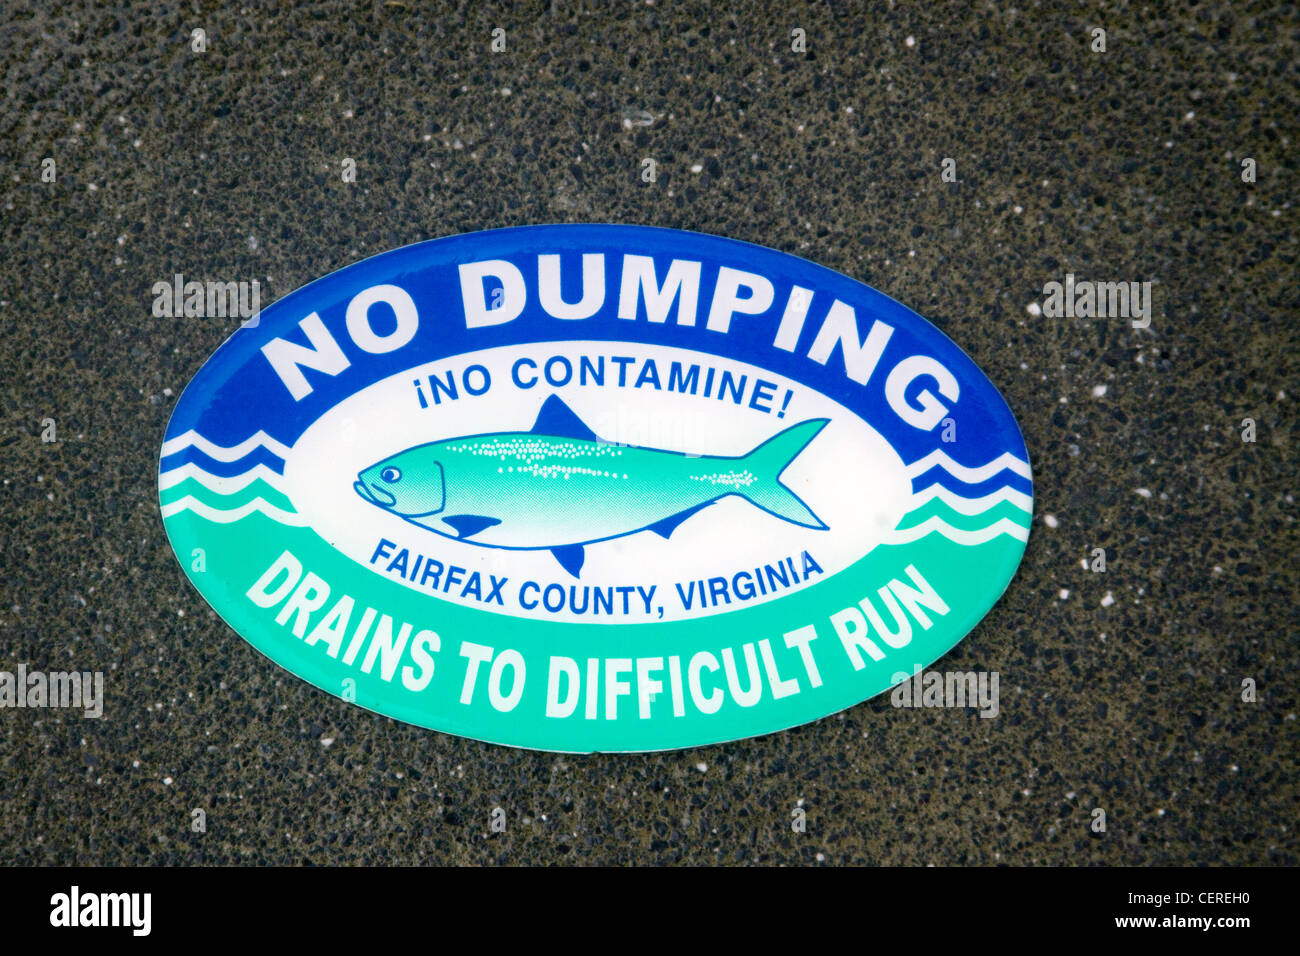 Fairfax County Virginia No Dumping Drains to Difficult Run sign on top of a storm water drainage catch basin inlet - Stock Image